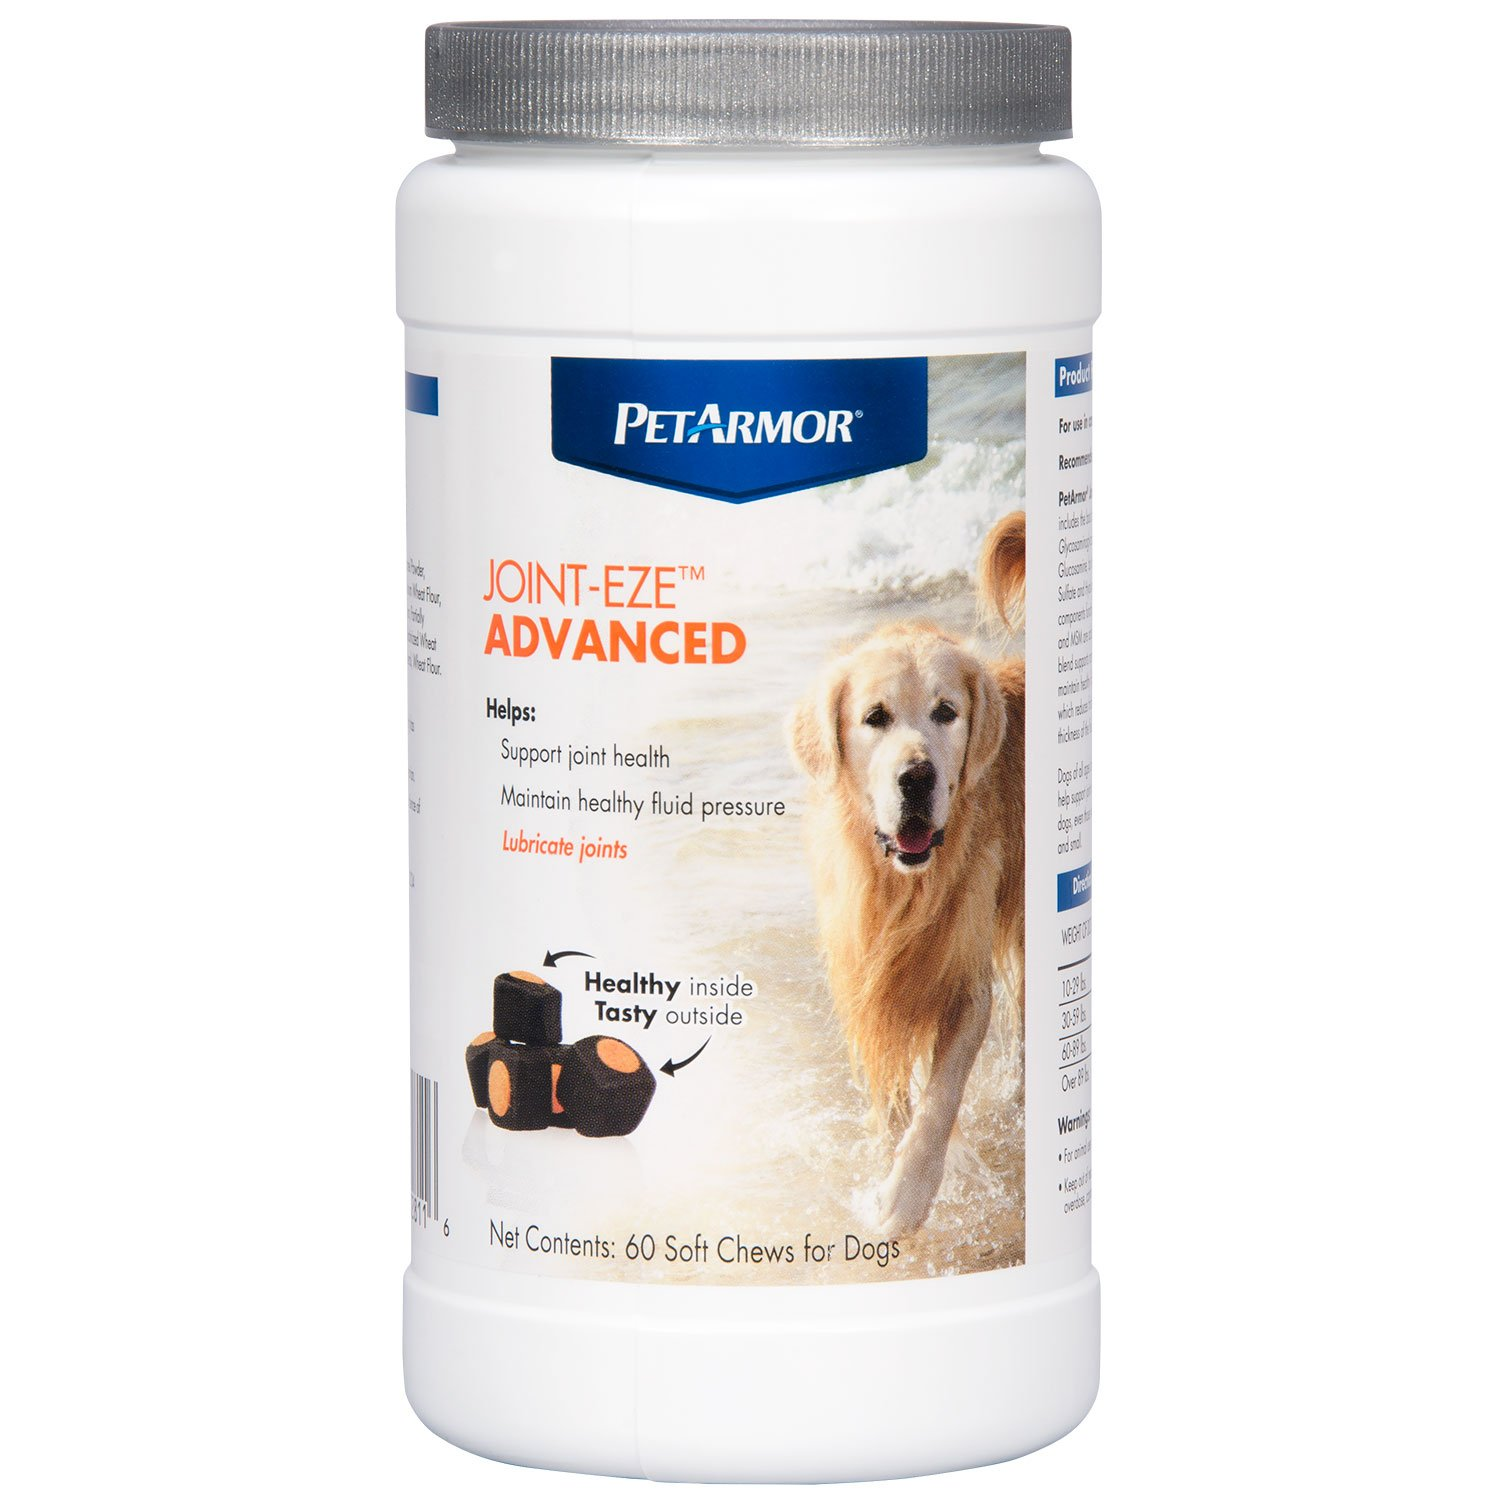 PETARMOR Joint-Eze Advanced for Dogs, 60 count by PETARMOR (Image #2)